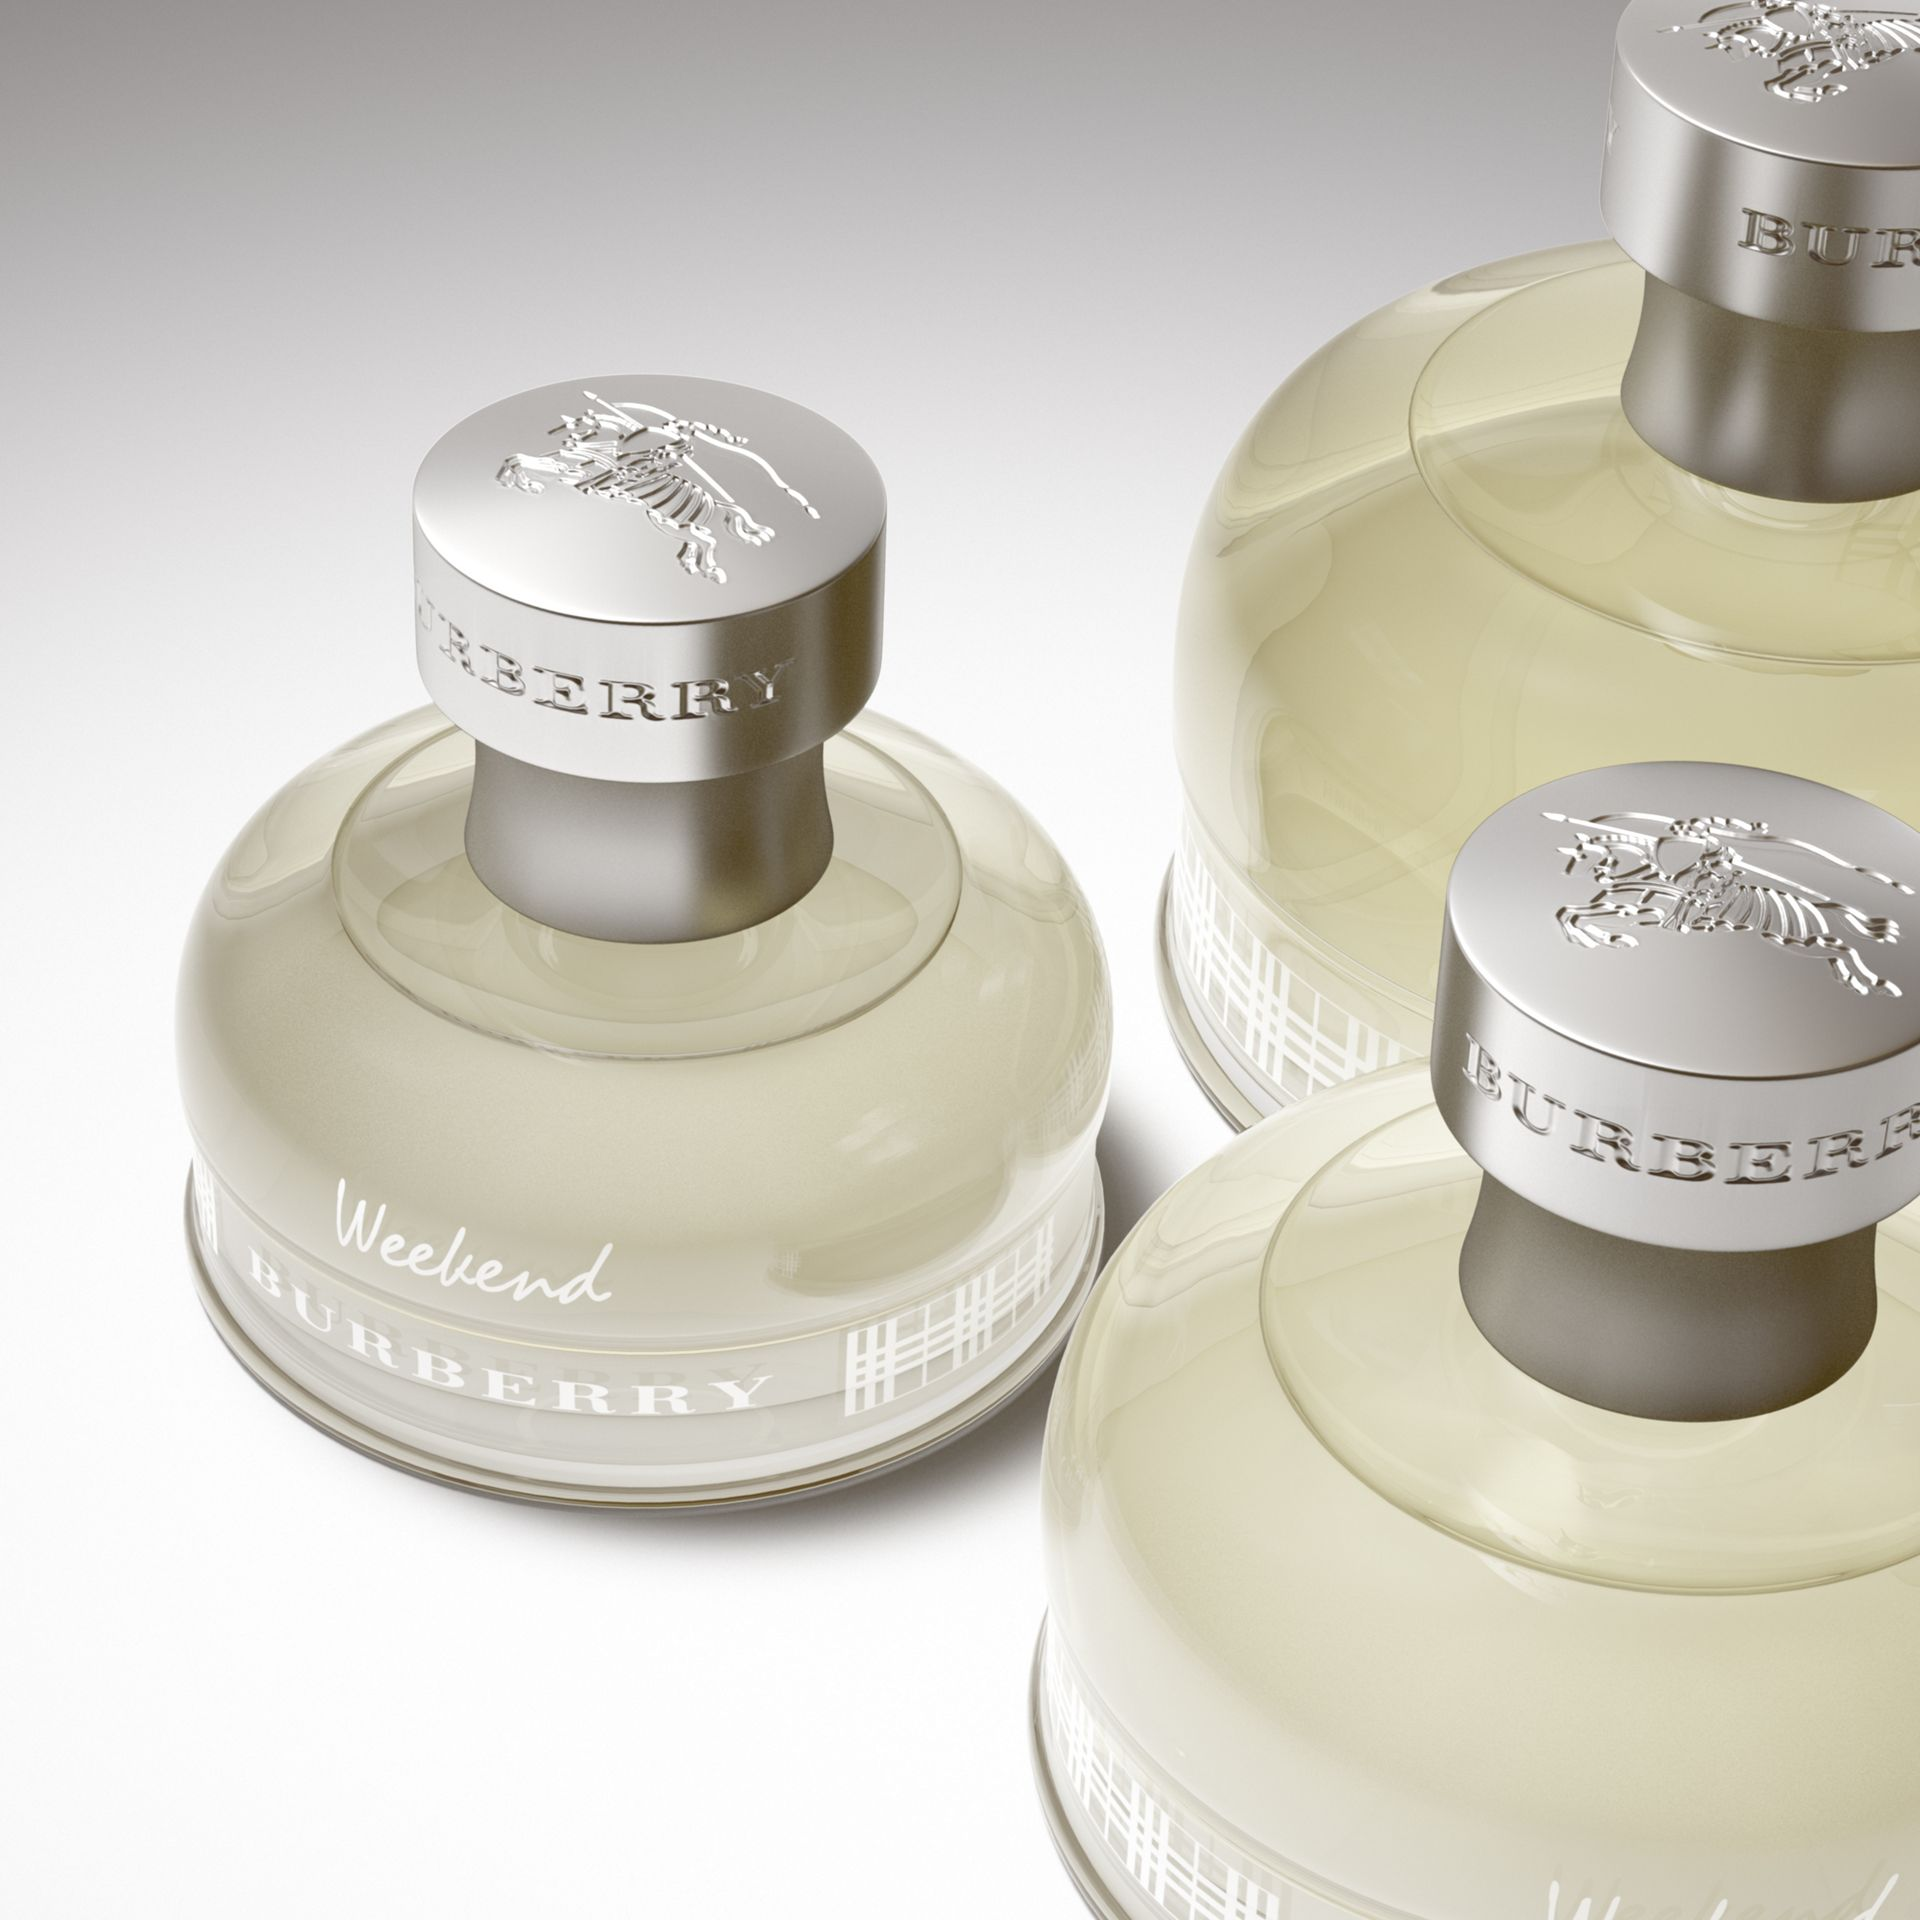 Burberry Weekend For Women Eau De Parfum 30ml - Women | Burberry - gallery image 1